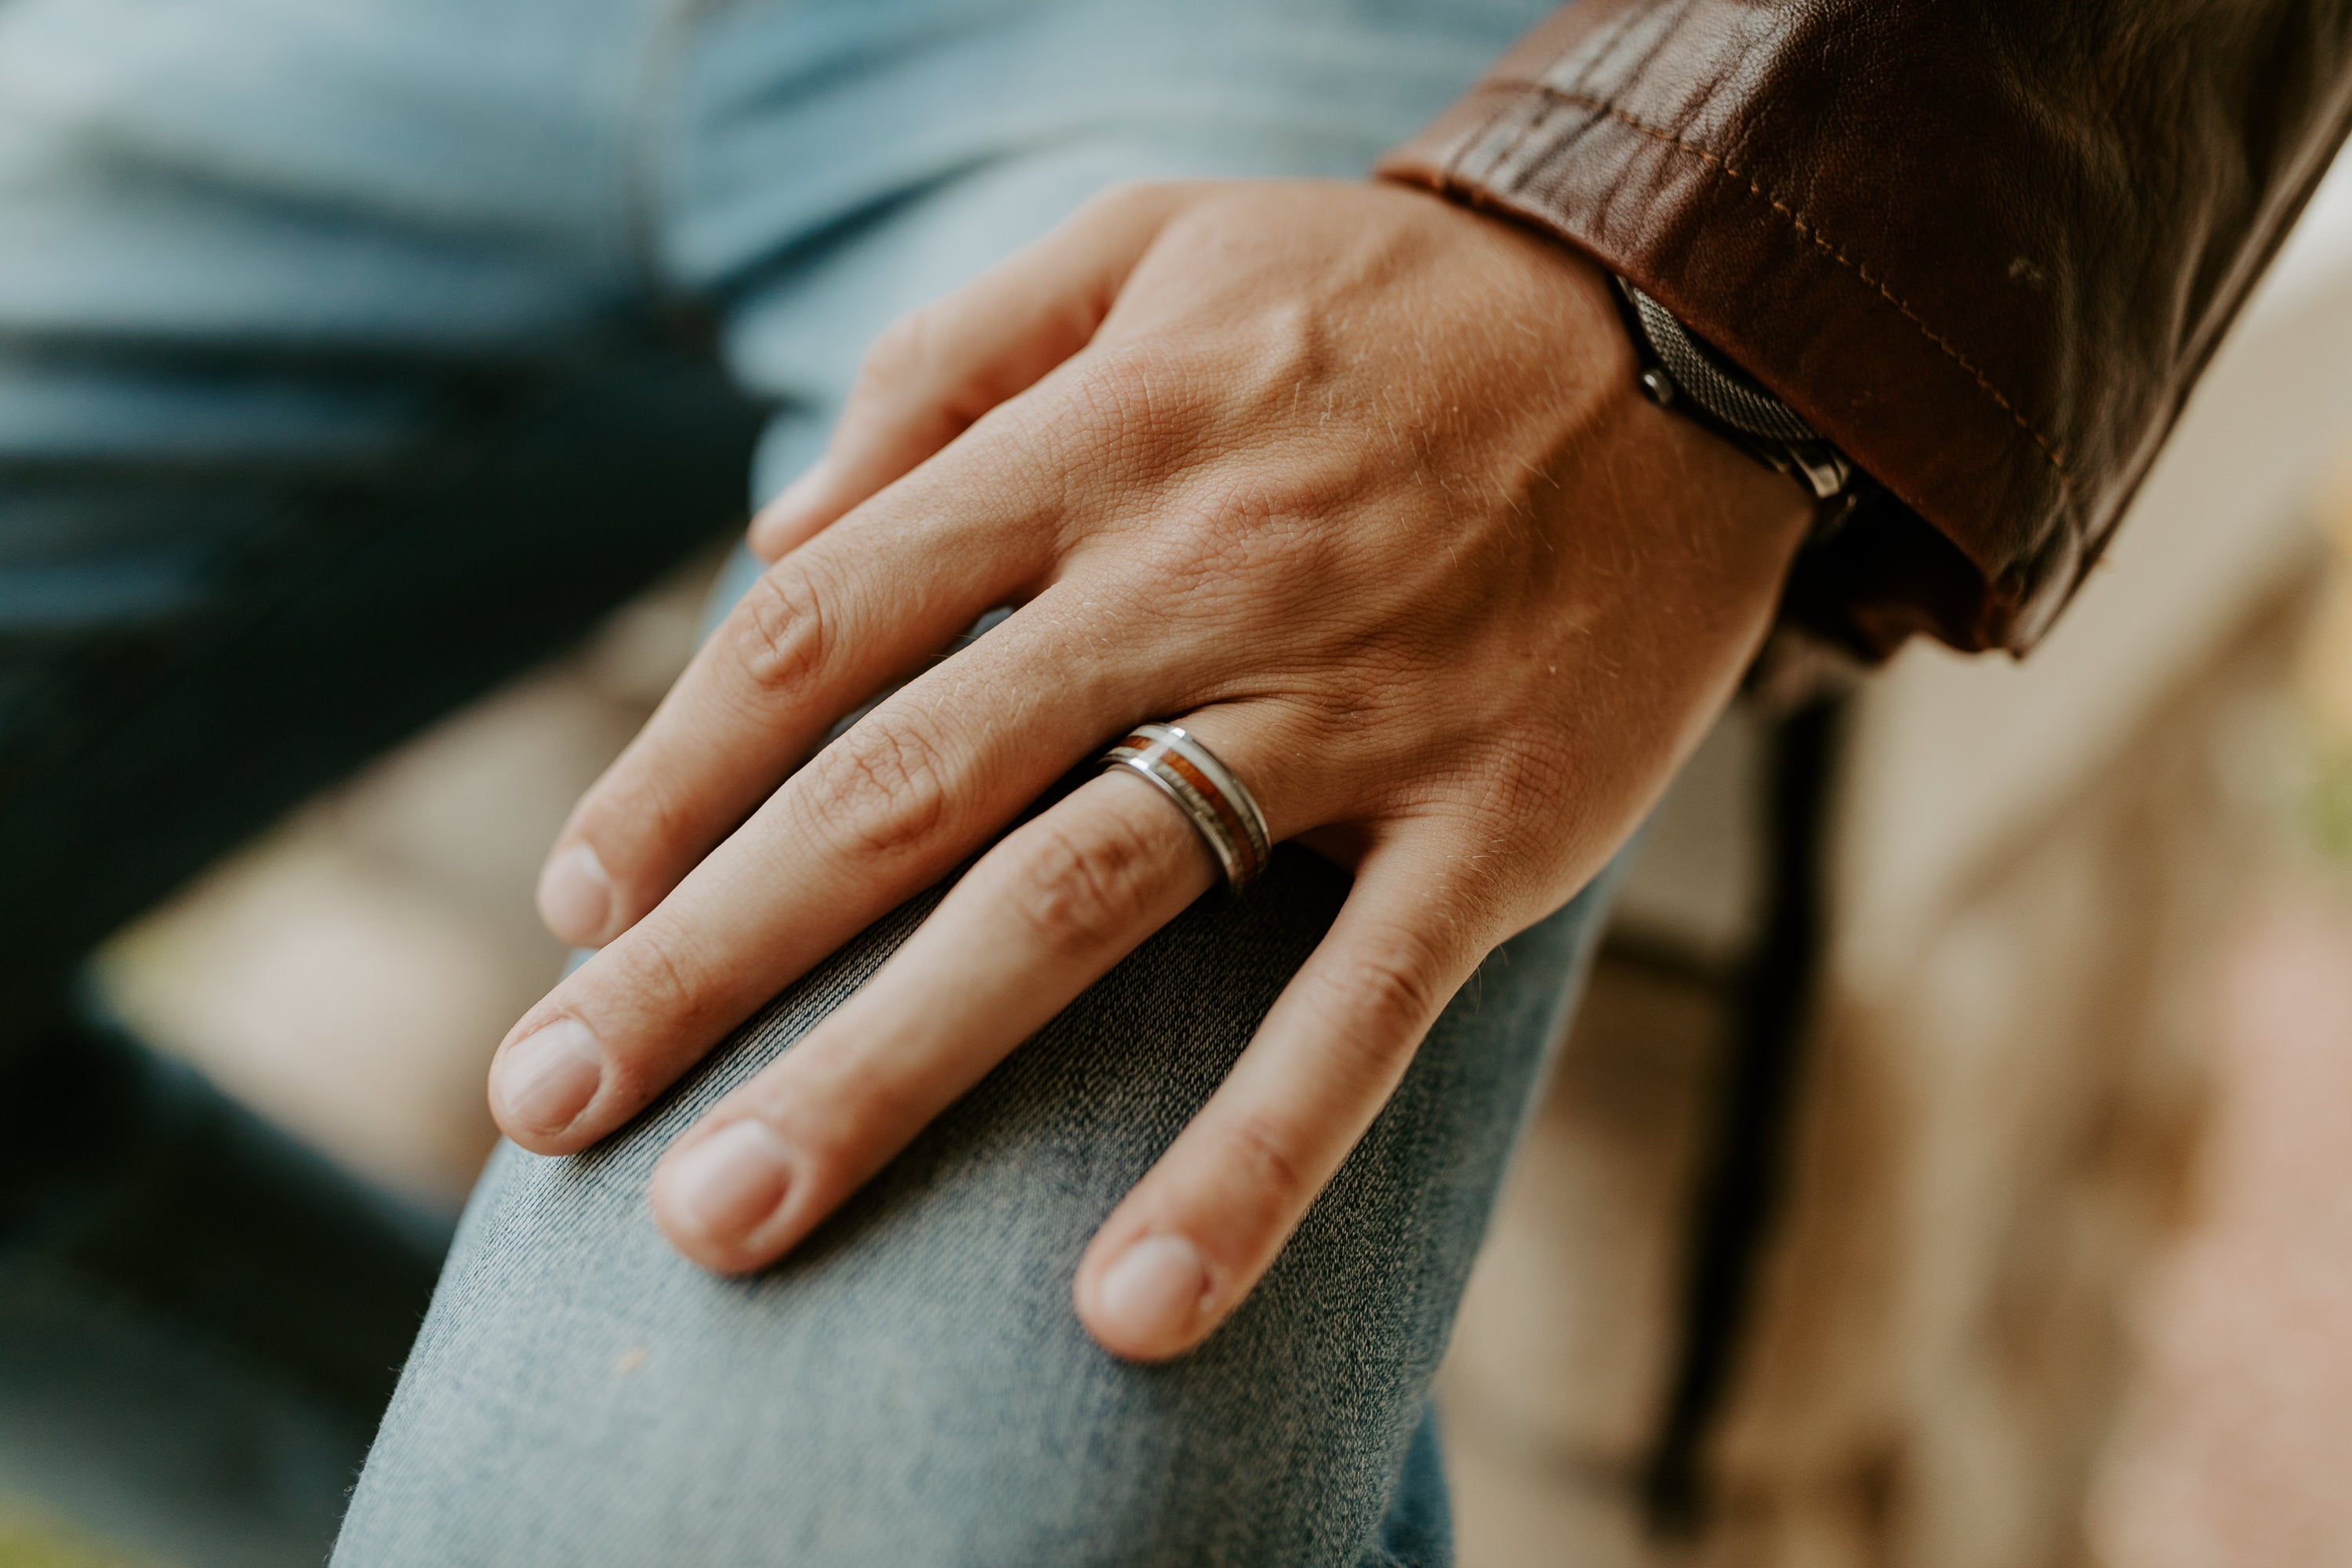 man-with-hand-on-lap-showing-mens-wedding-band-made-of-antler-wood